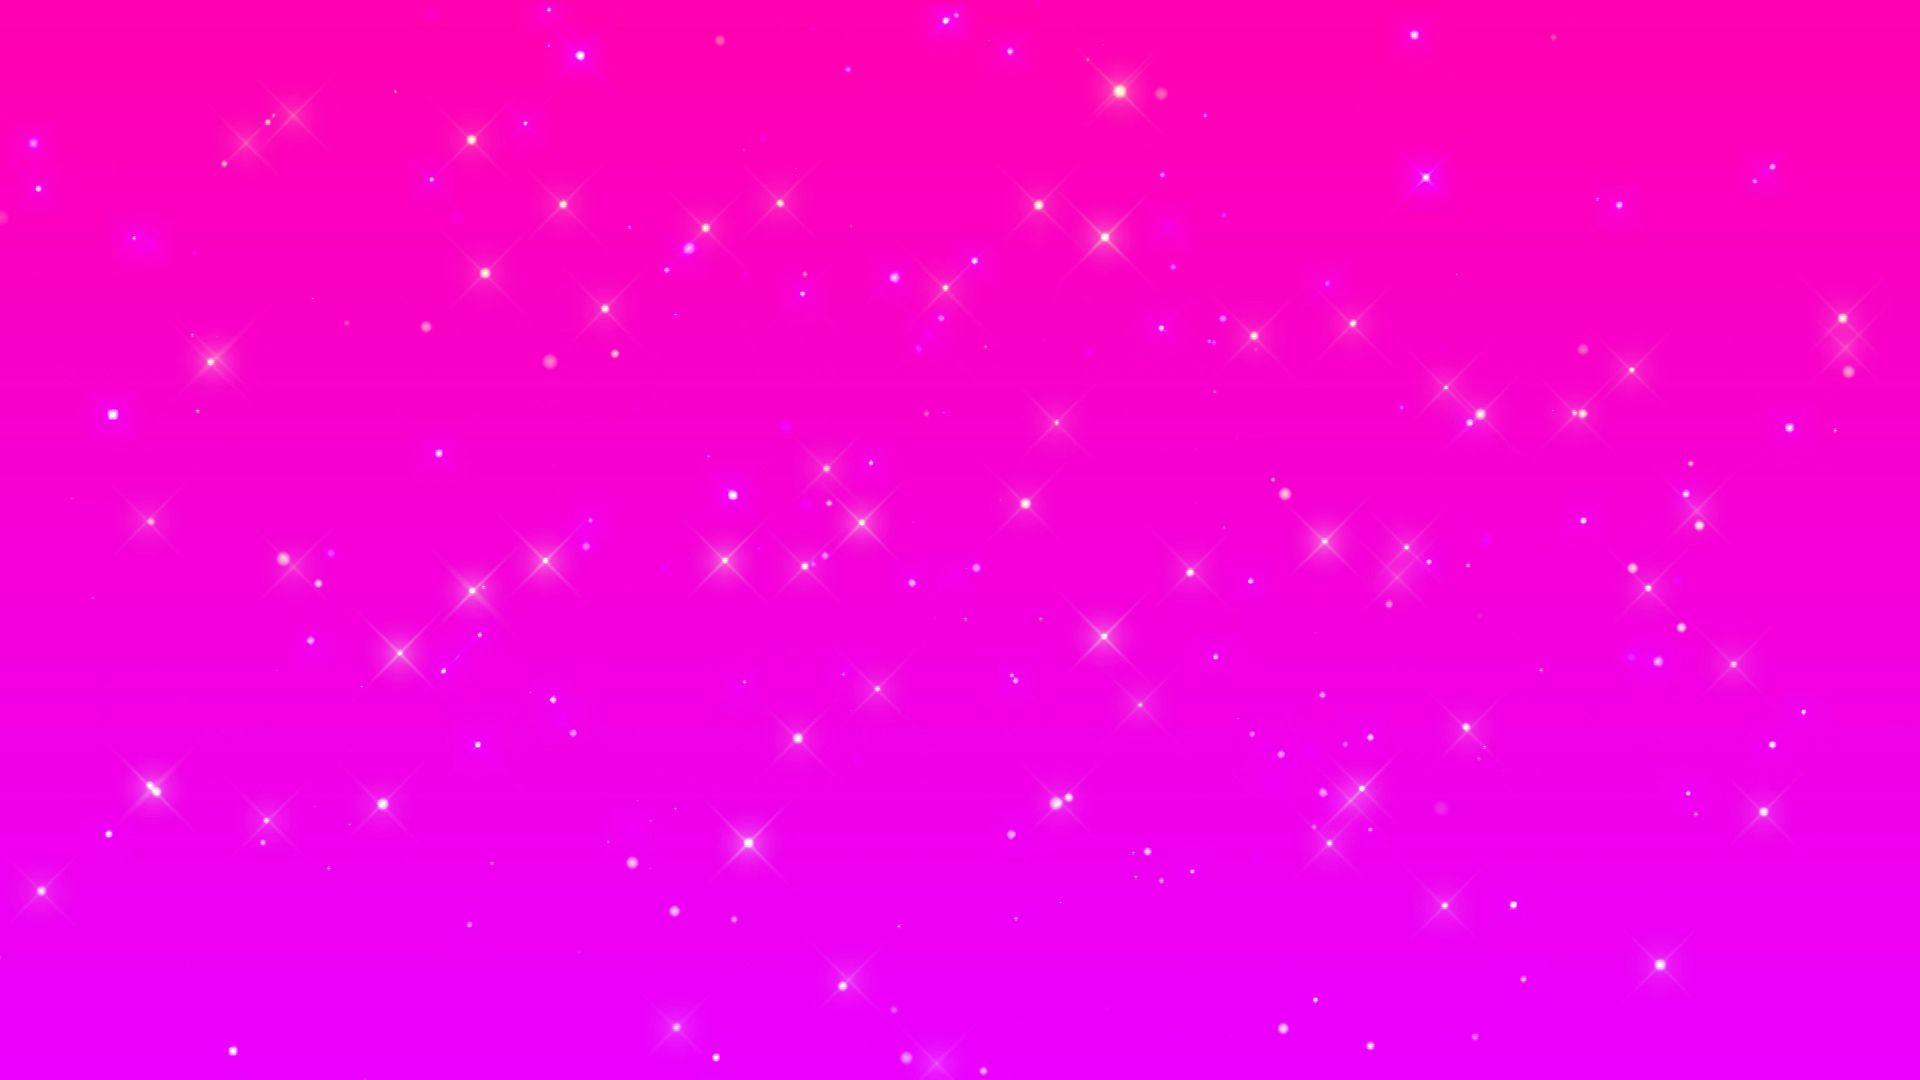 Pink Background Vectors, Photos and PSD files Free Download